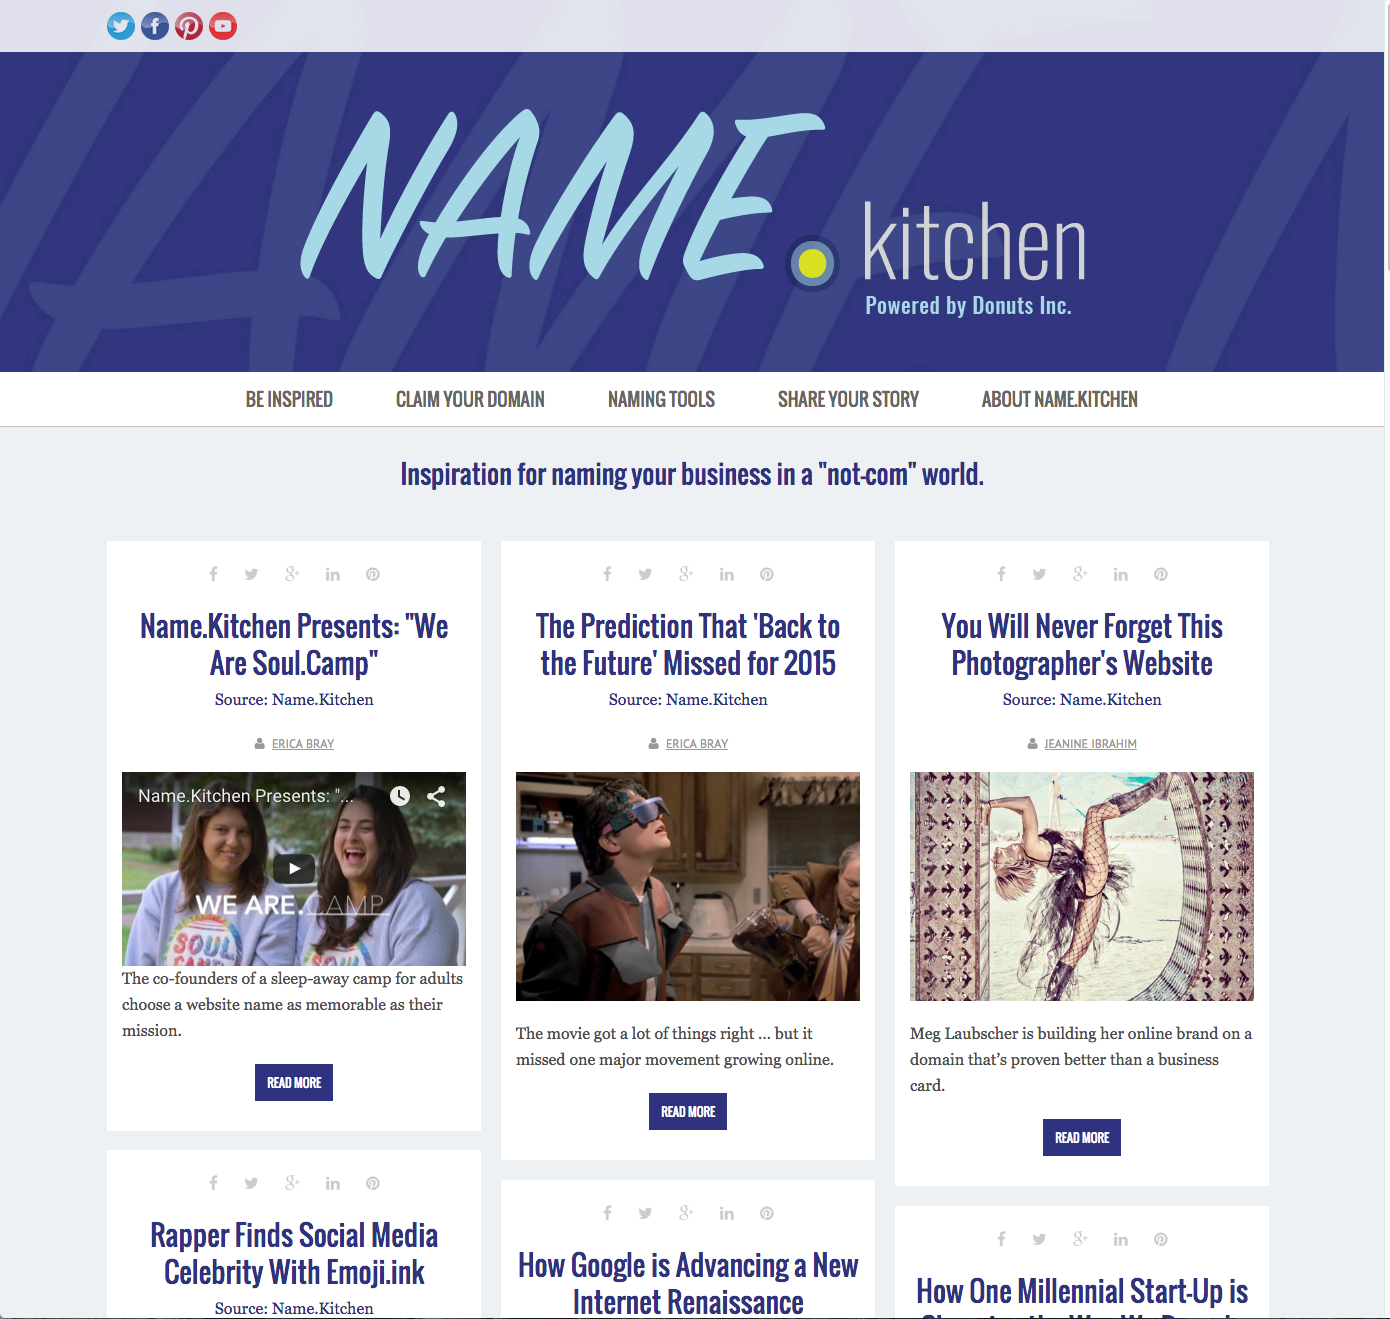 Name.Kitchen Website